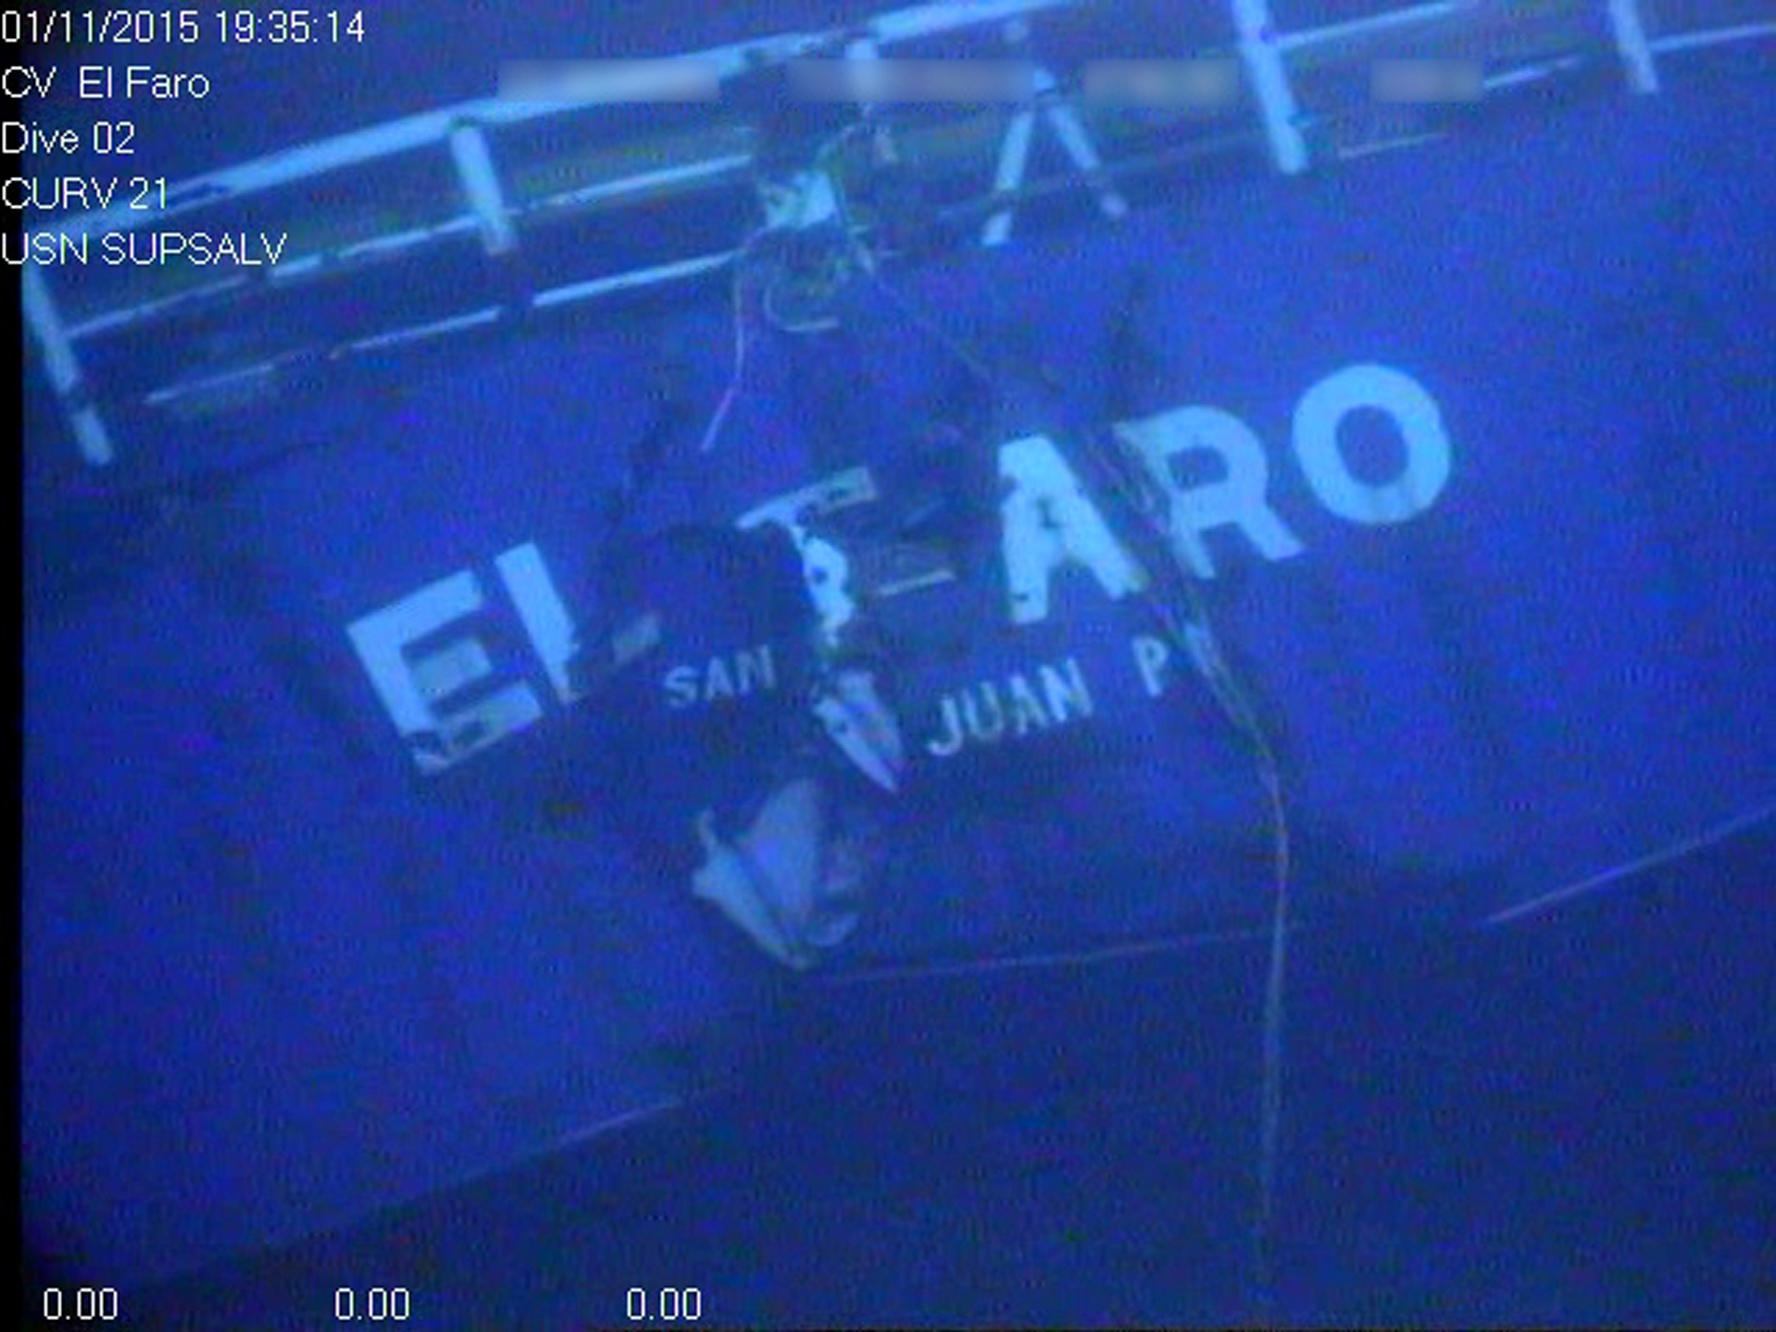 NTSB Releases Findings On What Sank The Doomed Ship El Faro | 90.5 WESA